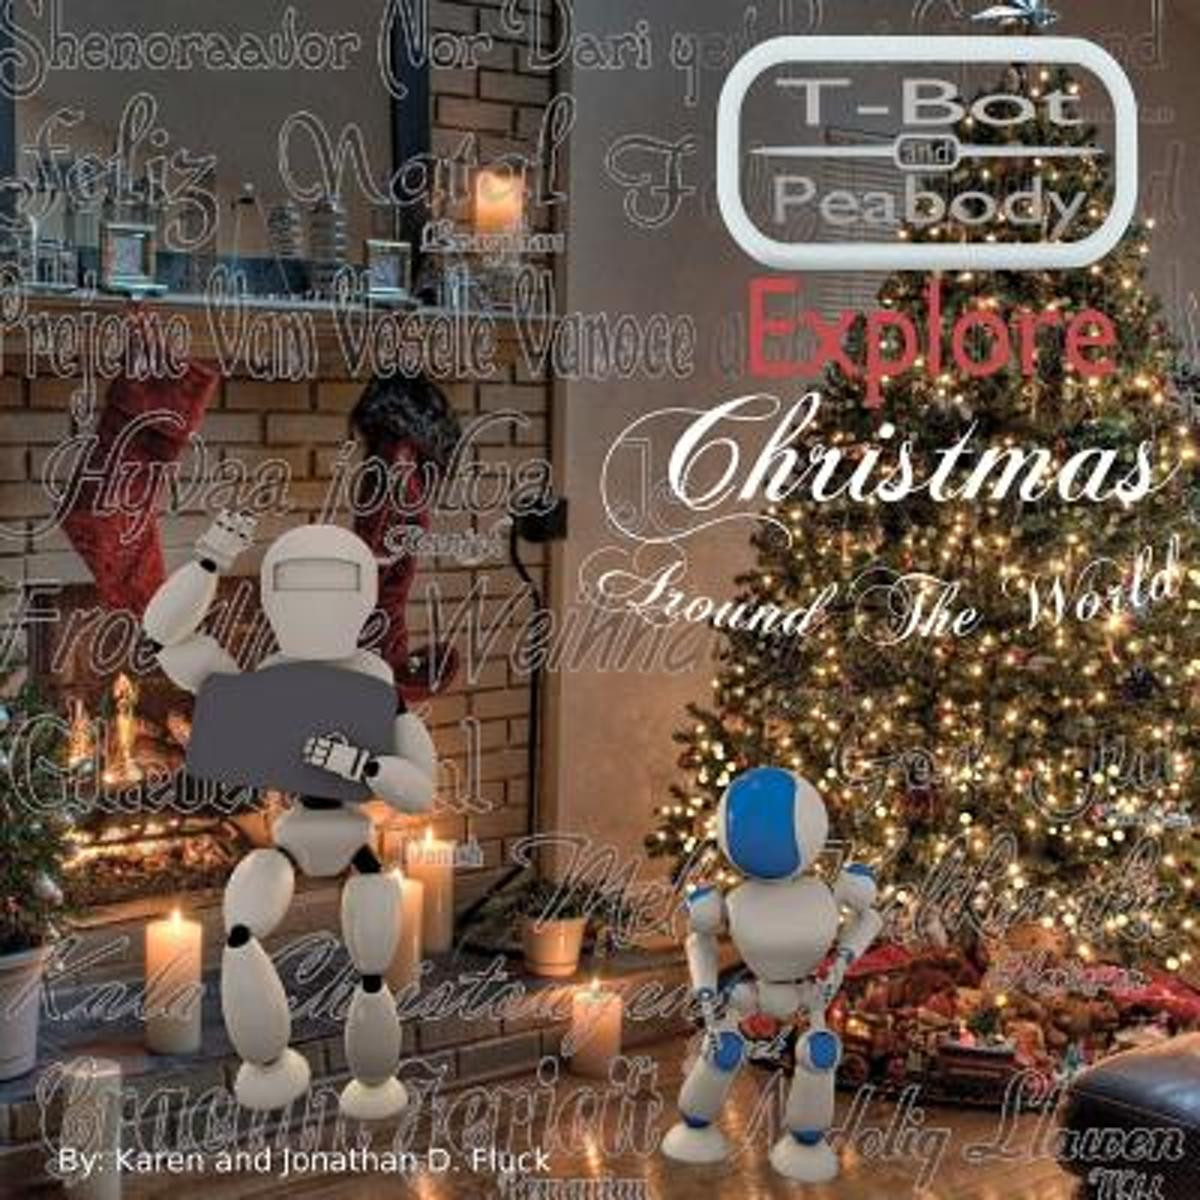 T-Bot and Peabody Explore Christmas Around the World